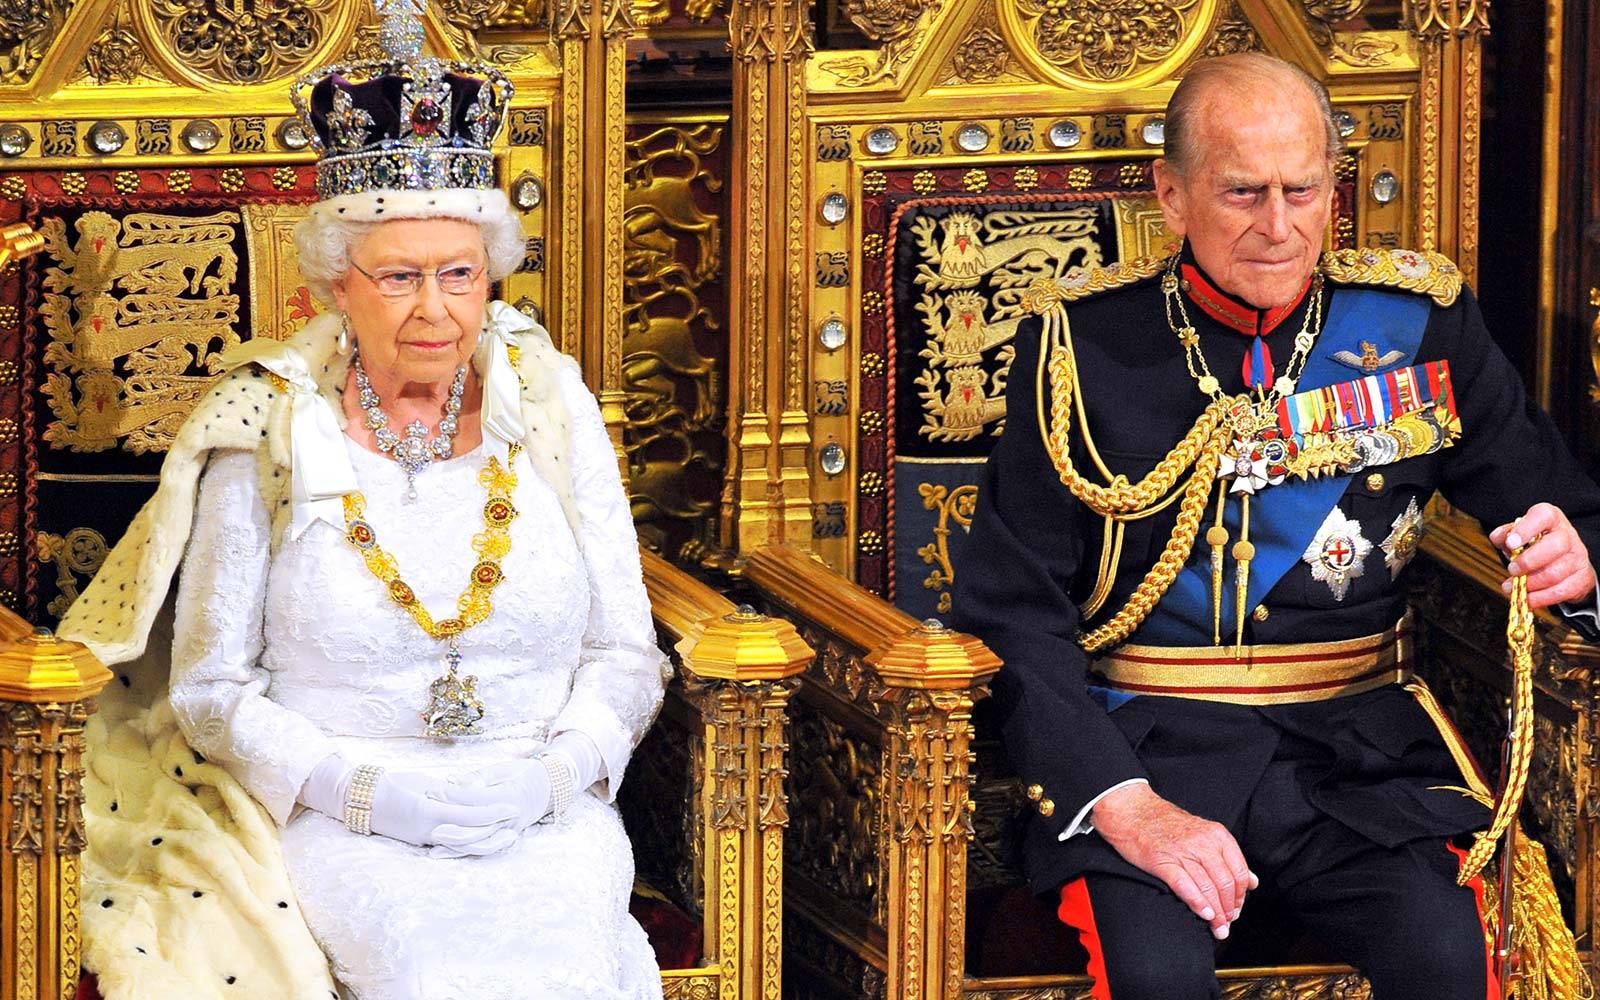 Prince Philip is retiring from royal duties after 70 years by Queen Elizabeth's side